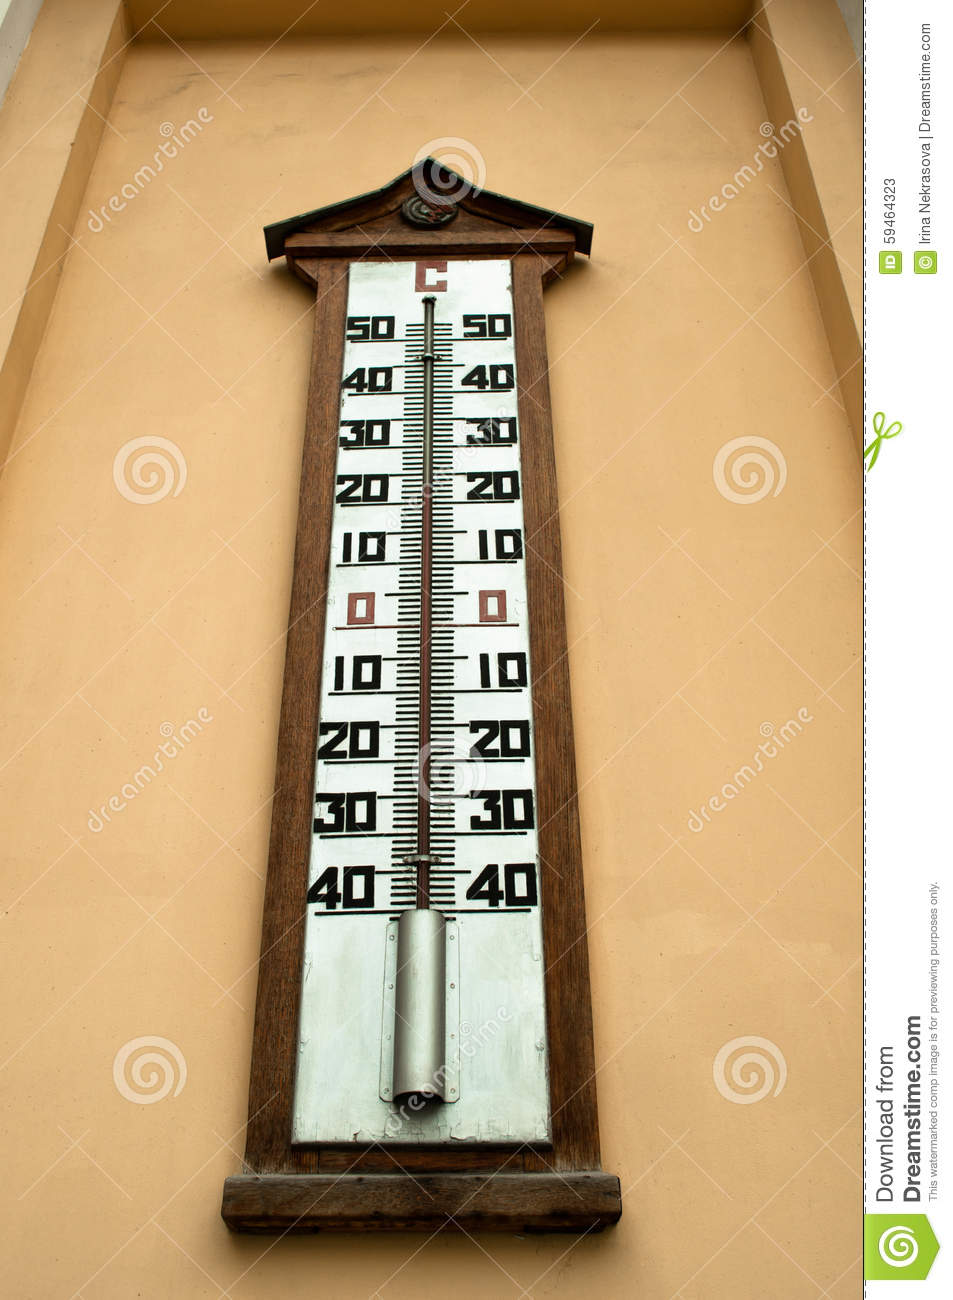 A Large Wall Mounted Mercury Temperature Gauge Stock Image